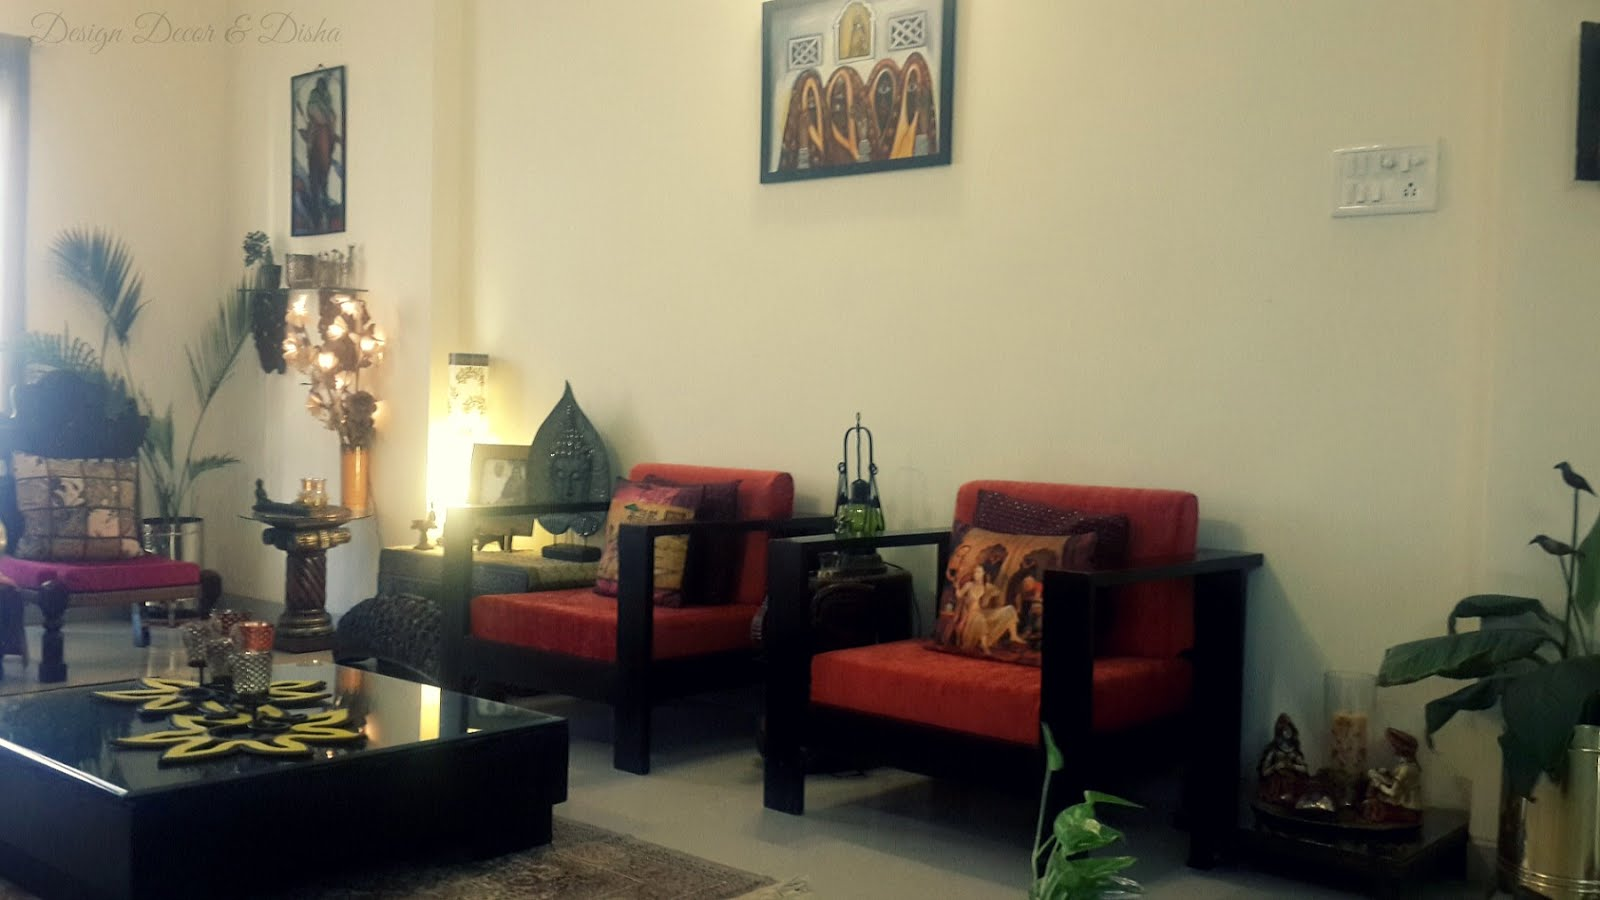 Design decor disha an indian design decor blog home for Home decor living room